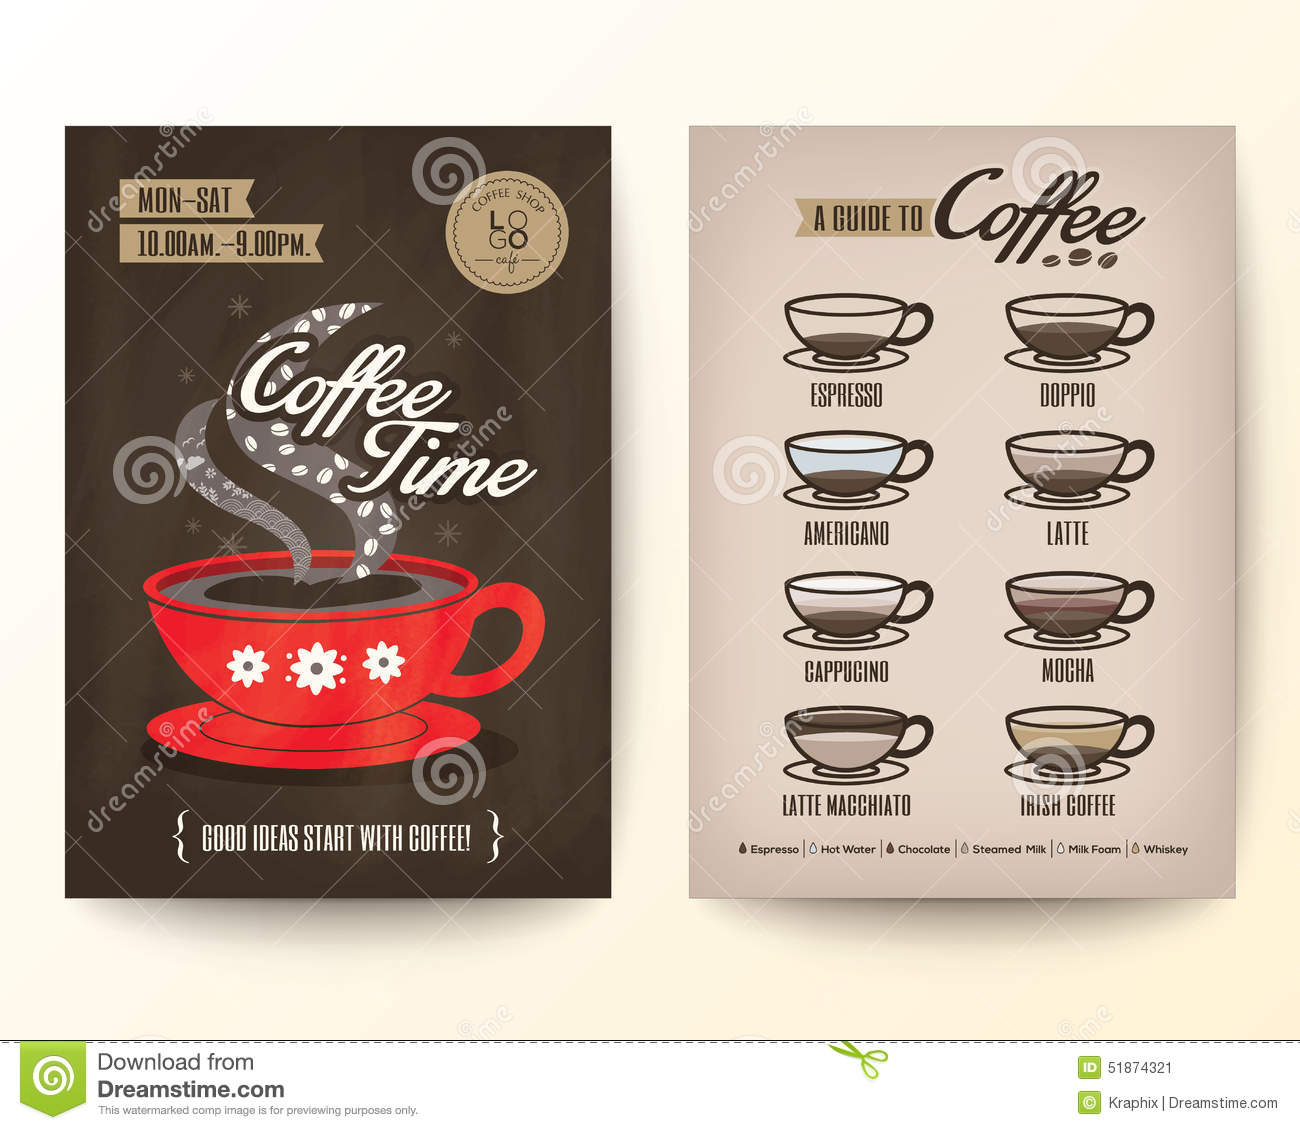 Brochure flyer poster design template layout with type of coffee stock vector image 51874321 - Picture design samples ...